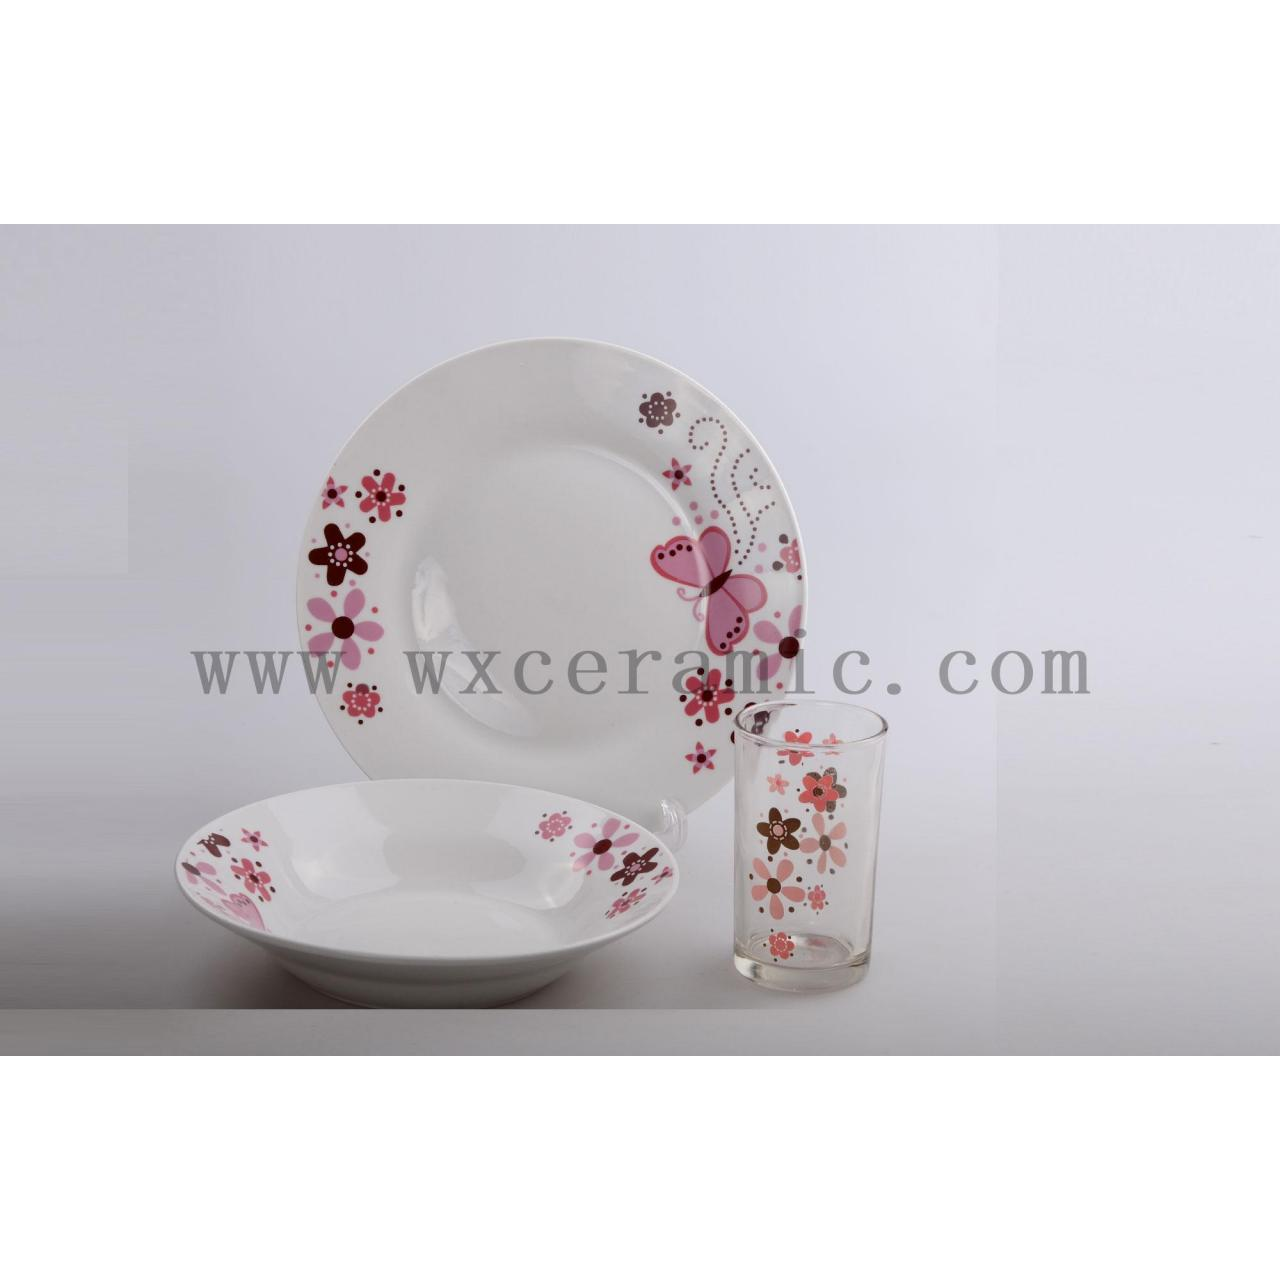 China dinner set porcelain ware, round ceramic table ware,12pc tableware on sale